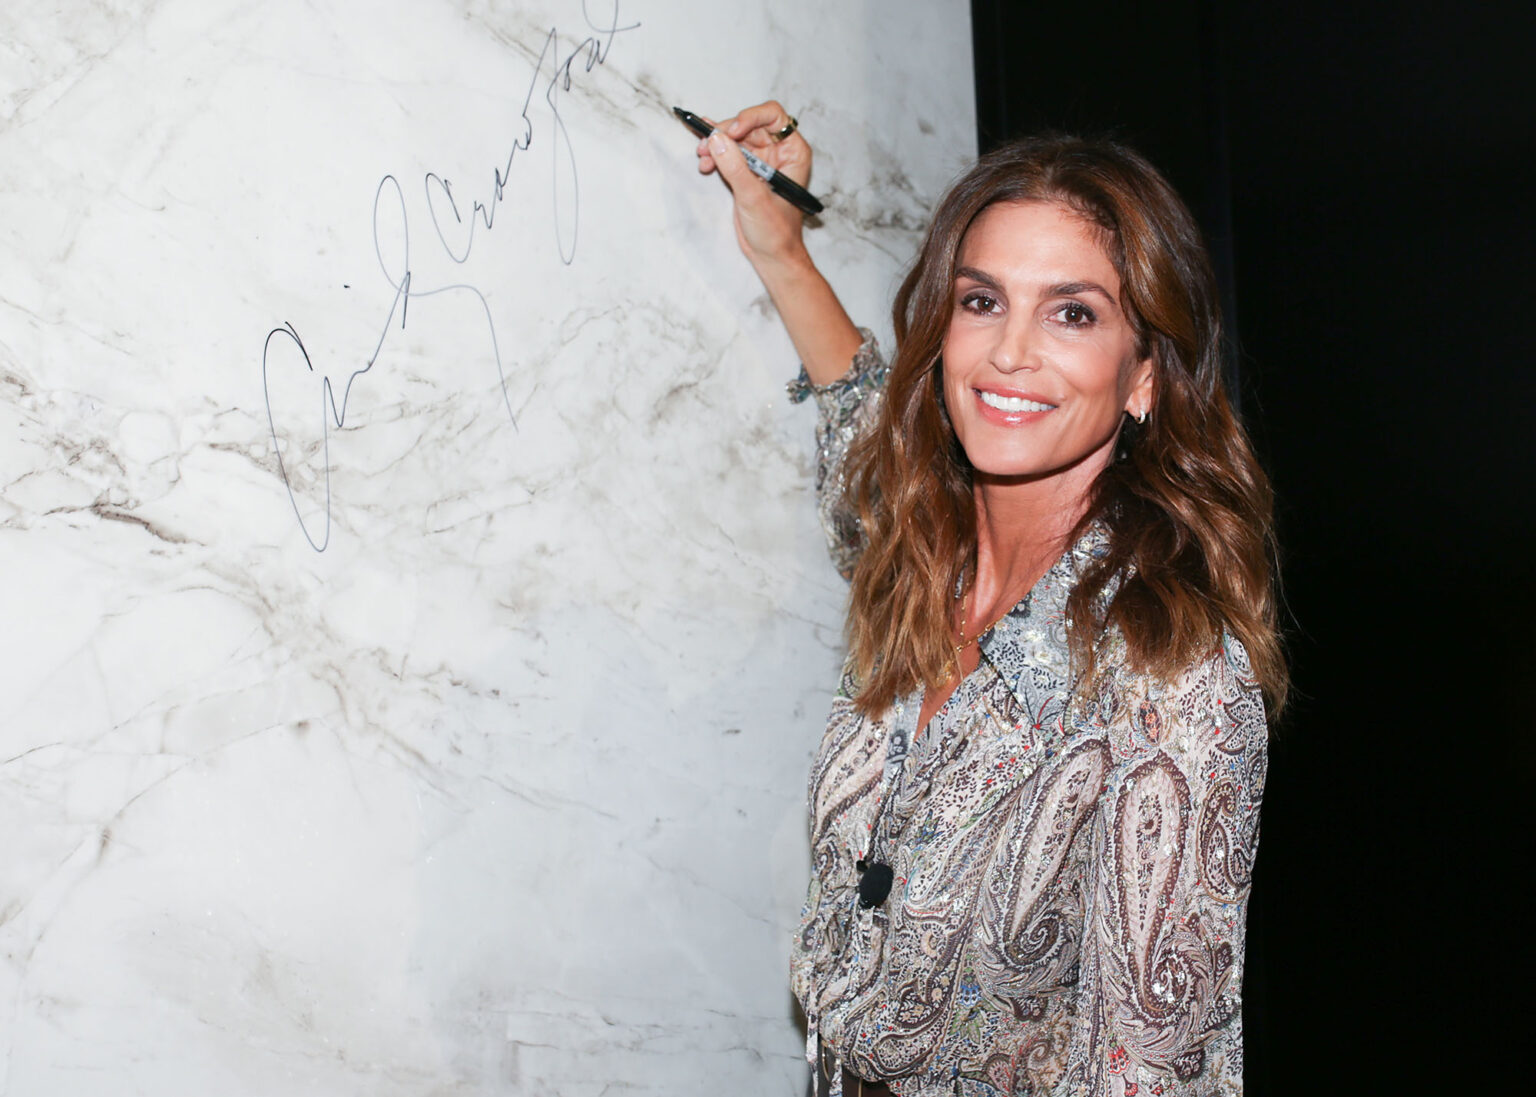 Image of Cosentino City Chicago Opening Cindy Crawford press 1536x1097 1 in Cosentino celebrates Chicago City Center Grand Opening with fashion icon Cindy Crawford - Cosentino